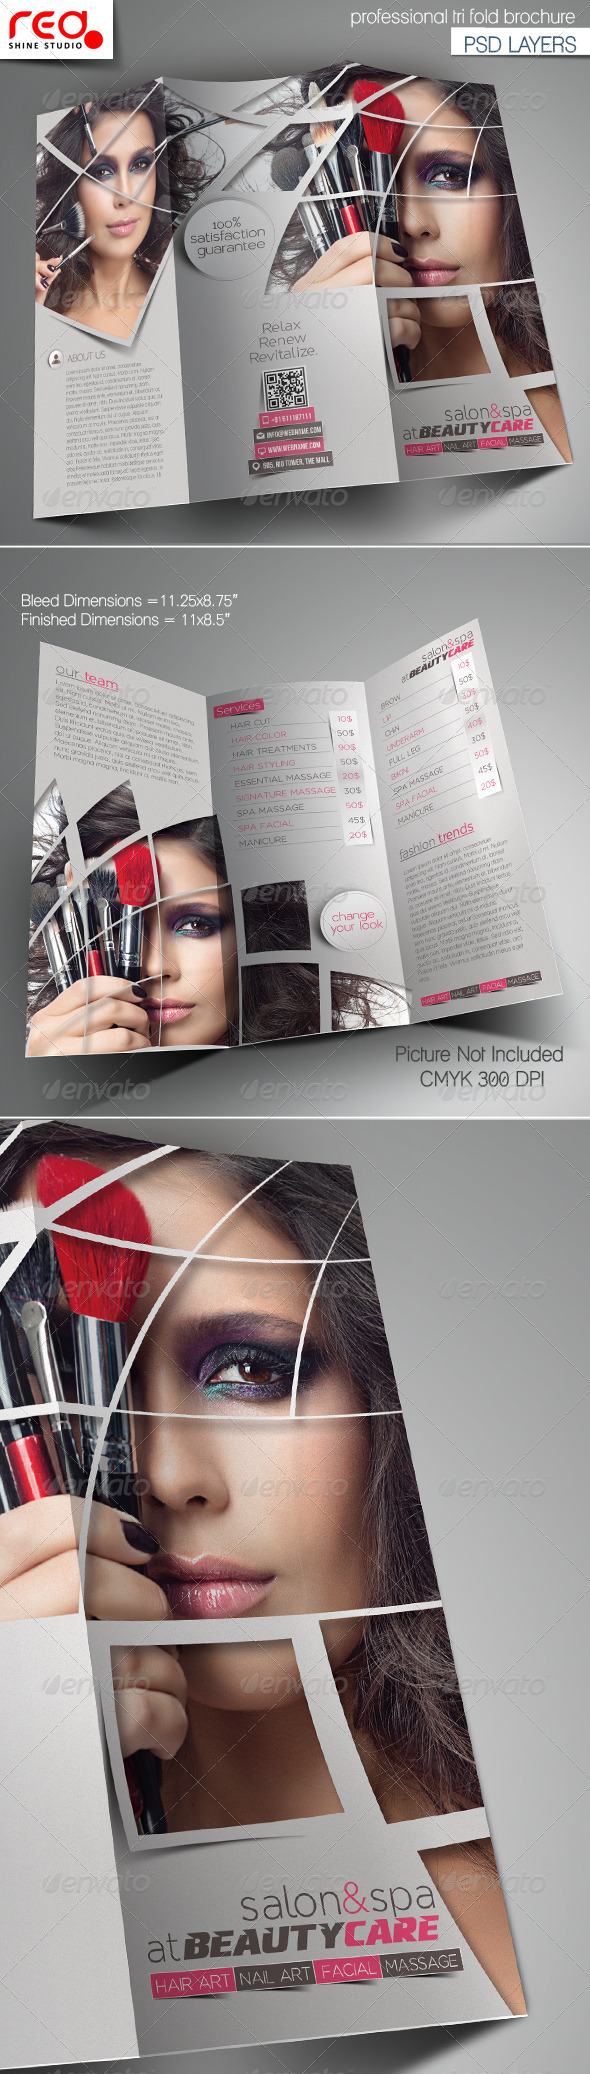 Beauty Care & Salon Trifold Brochure Template - Catalogs Brochures